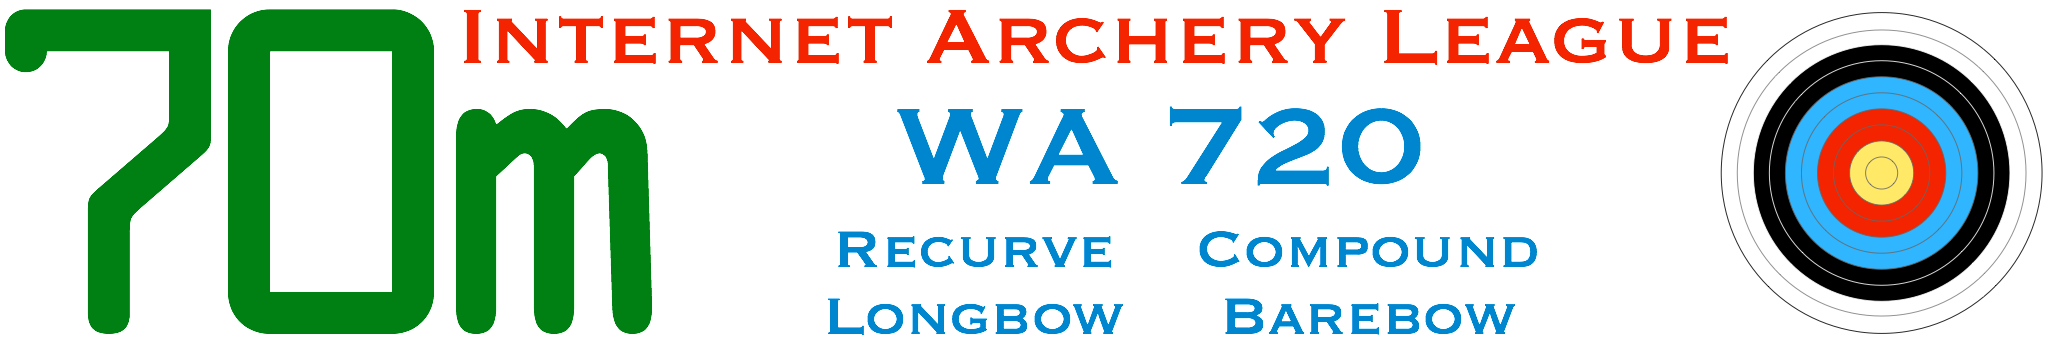 70 Metre Internet Archery League